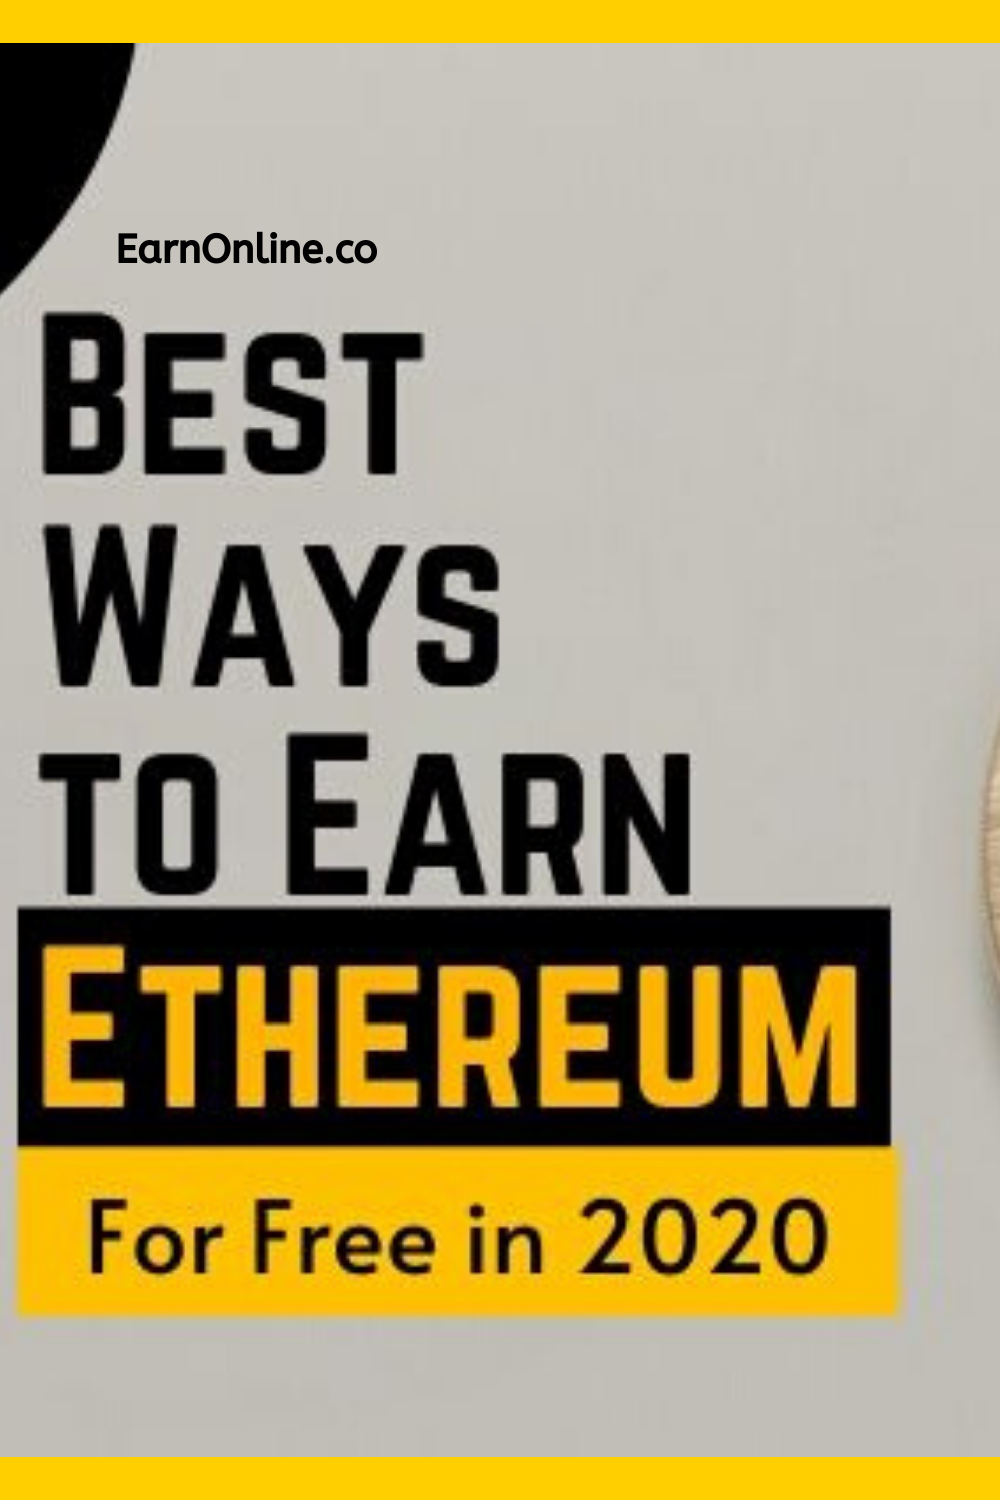 If you are interested in owning a few Ether and earning Ethereum free then our blog is helpful for you. #Ethereumfaucet #freeethereumapp